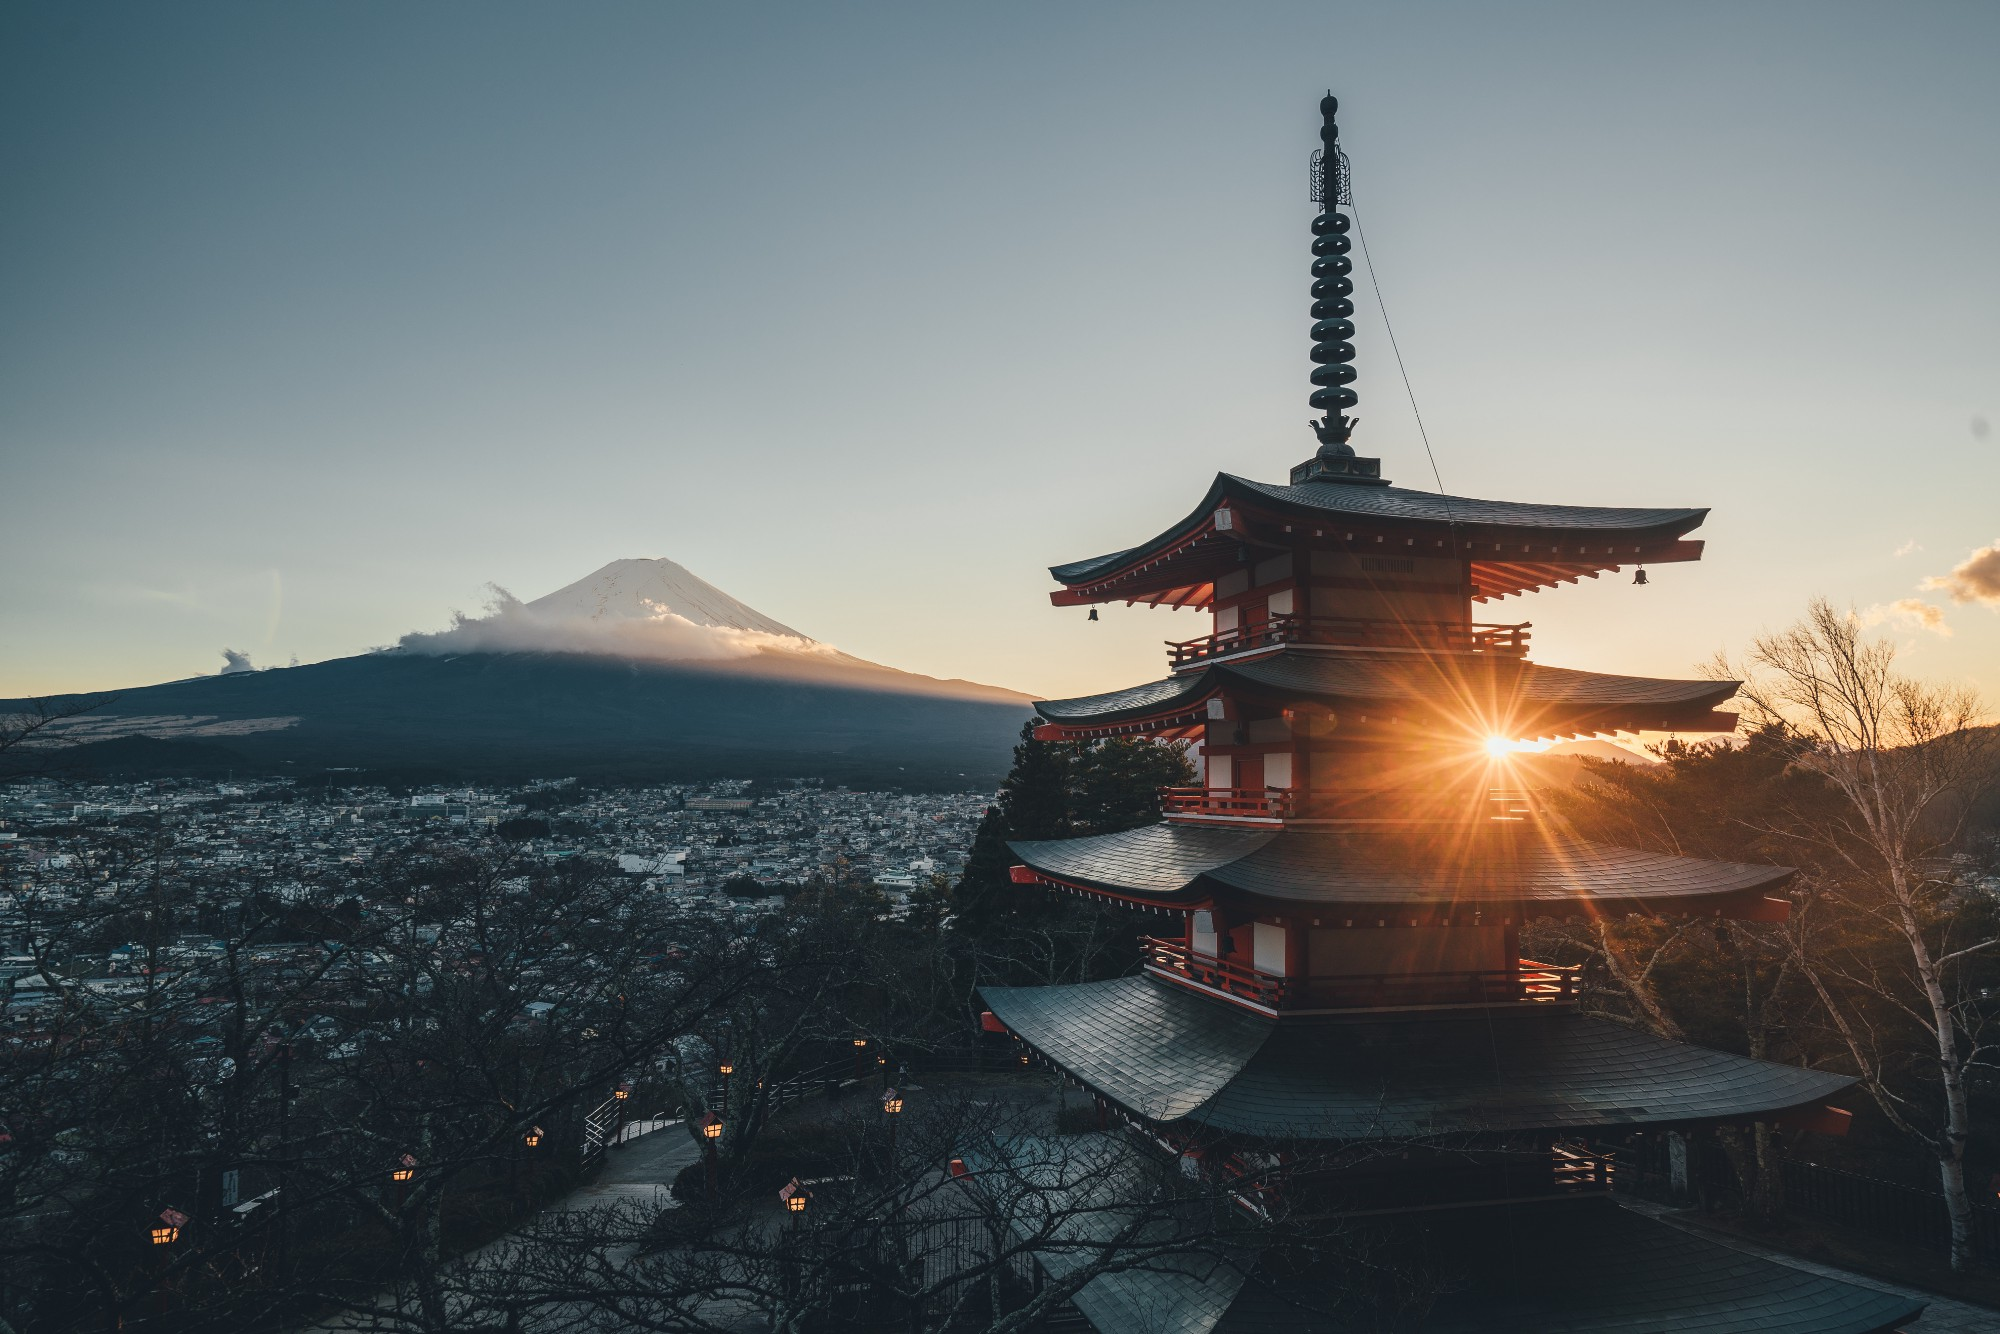 Japanese pagoda with Mount Fuji in the background